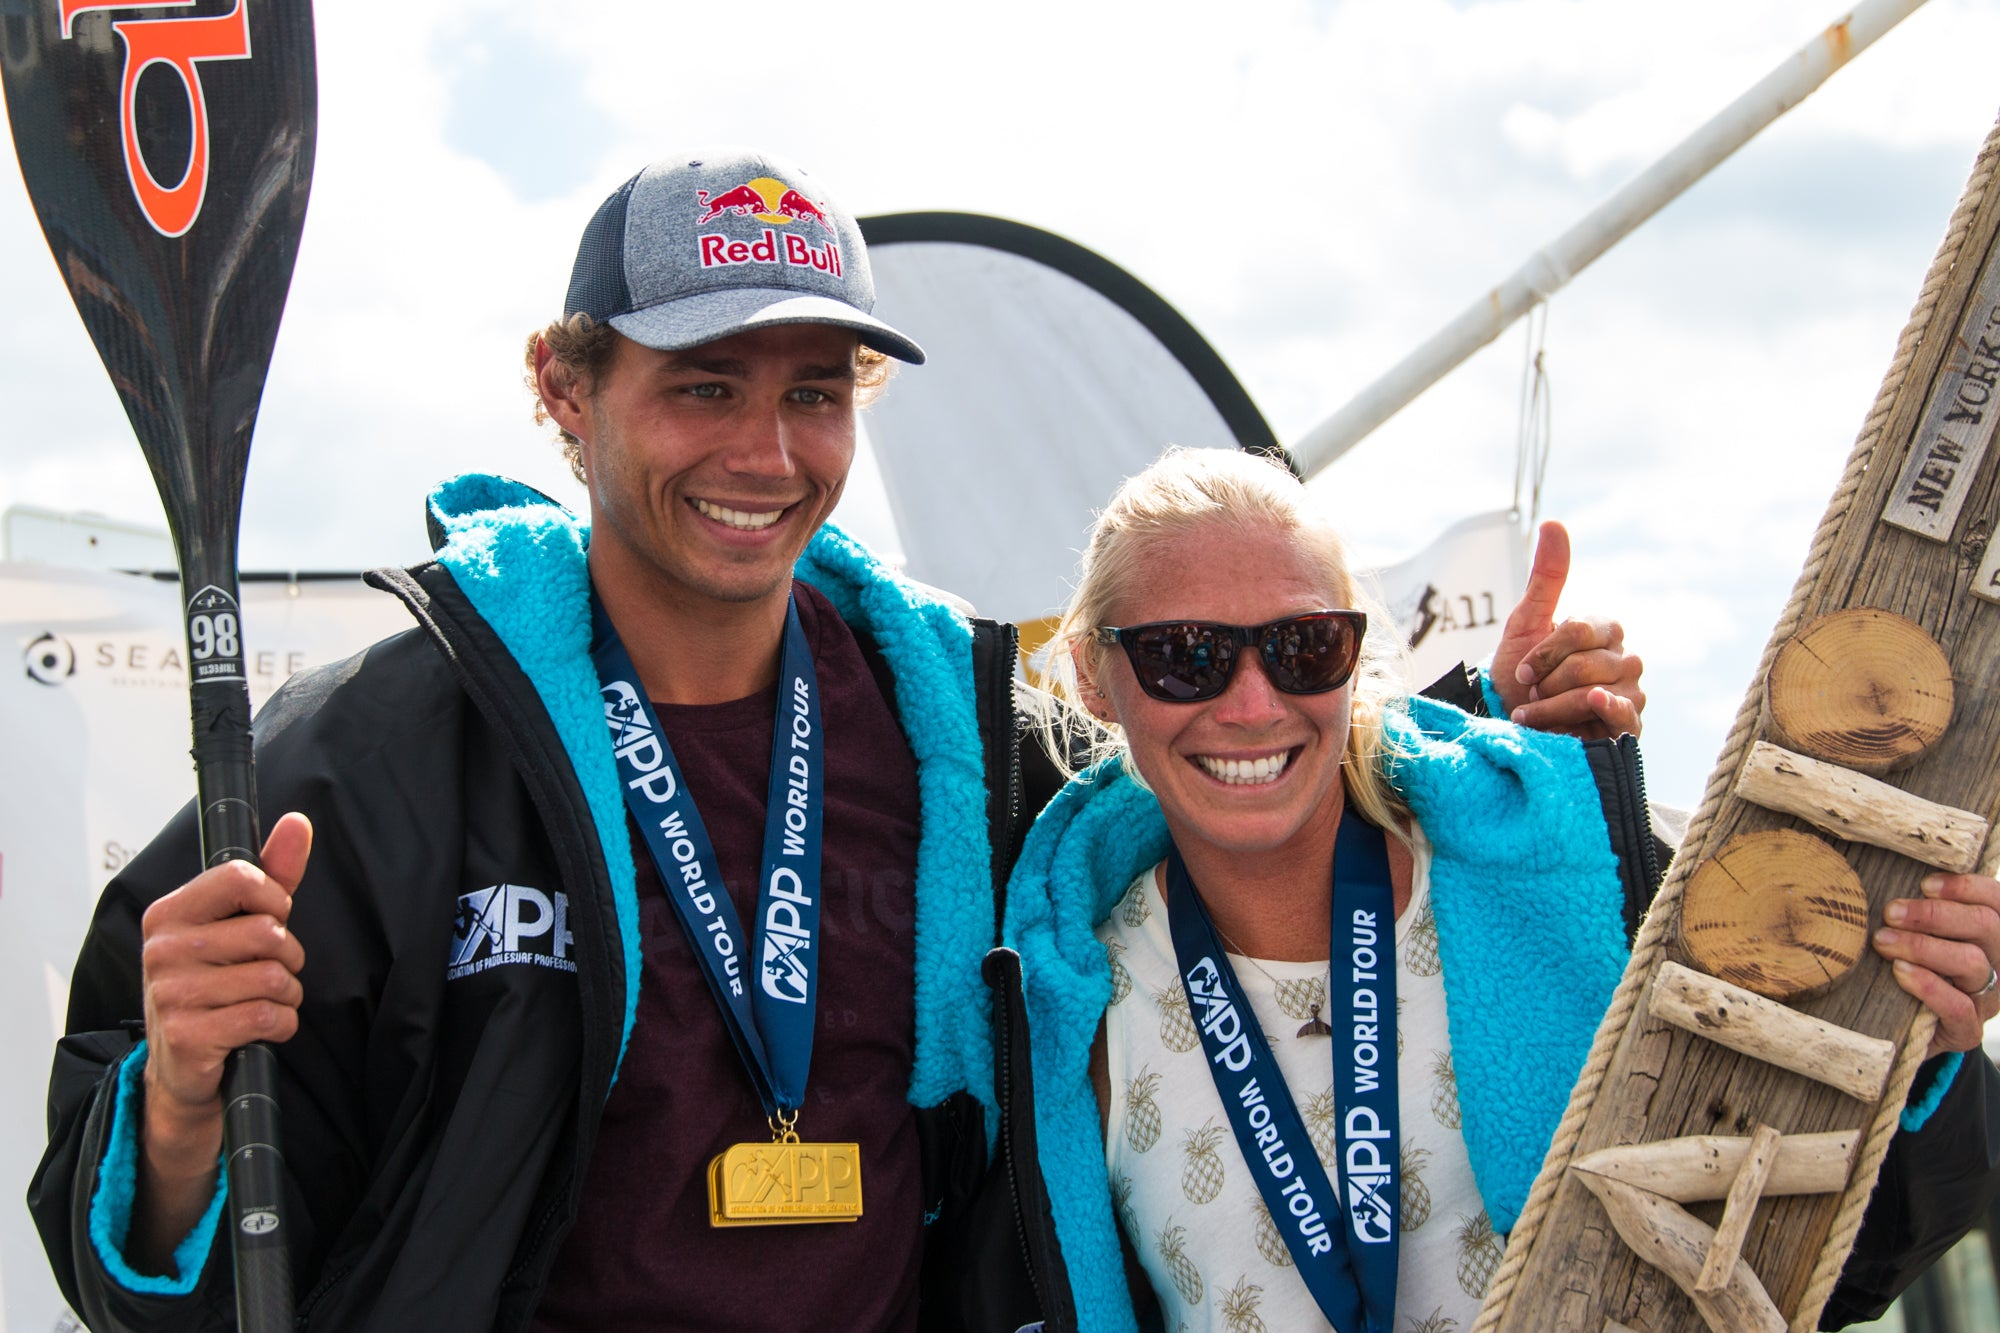 April Zilg and Arthur Arutkin winners of the New York SUP Open 2019 - APP World Tour